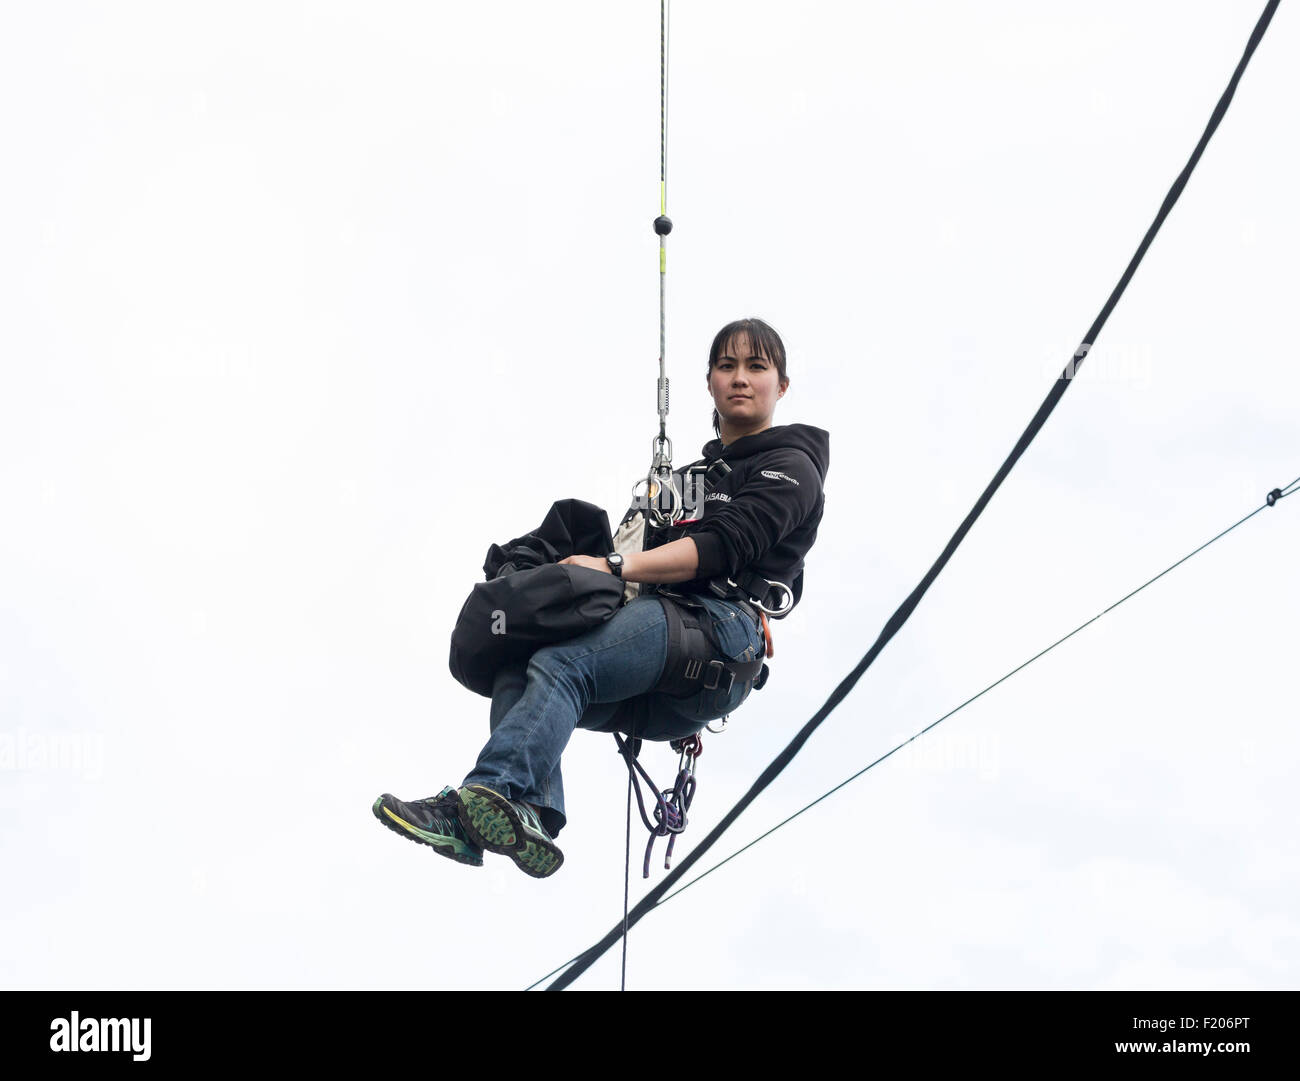 Young woman with a calm expression hangs dangling from a rope in a harness with safety equipment Stock Photo